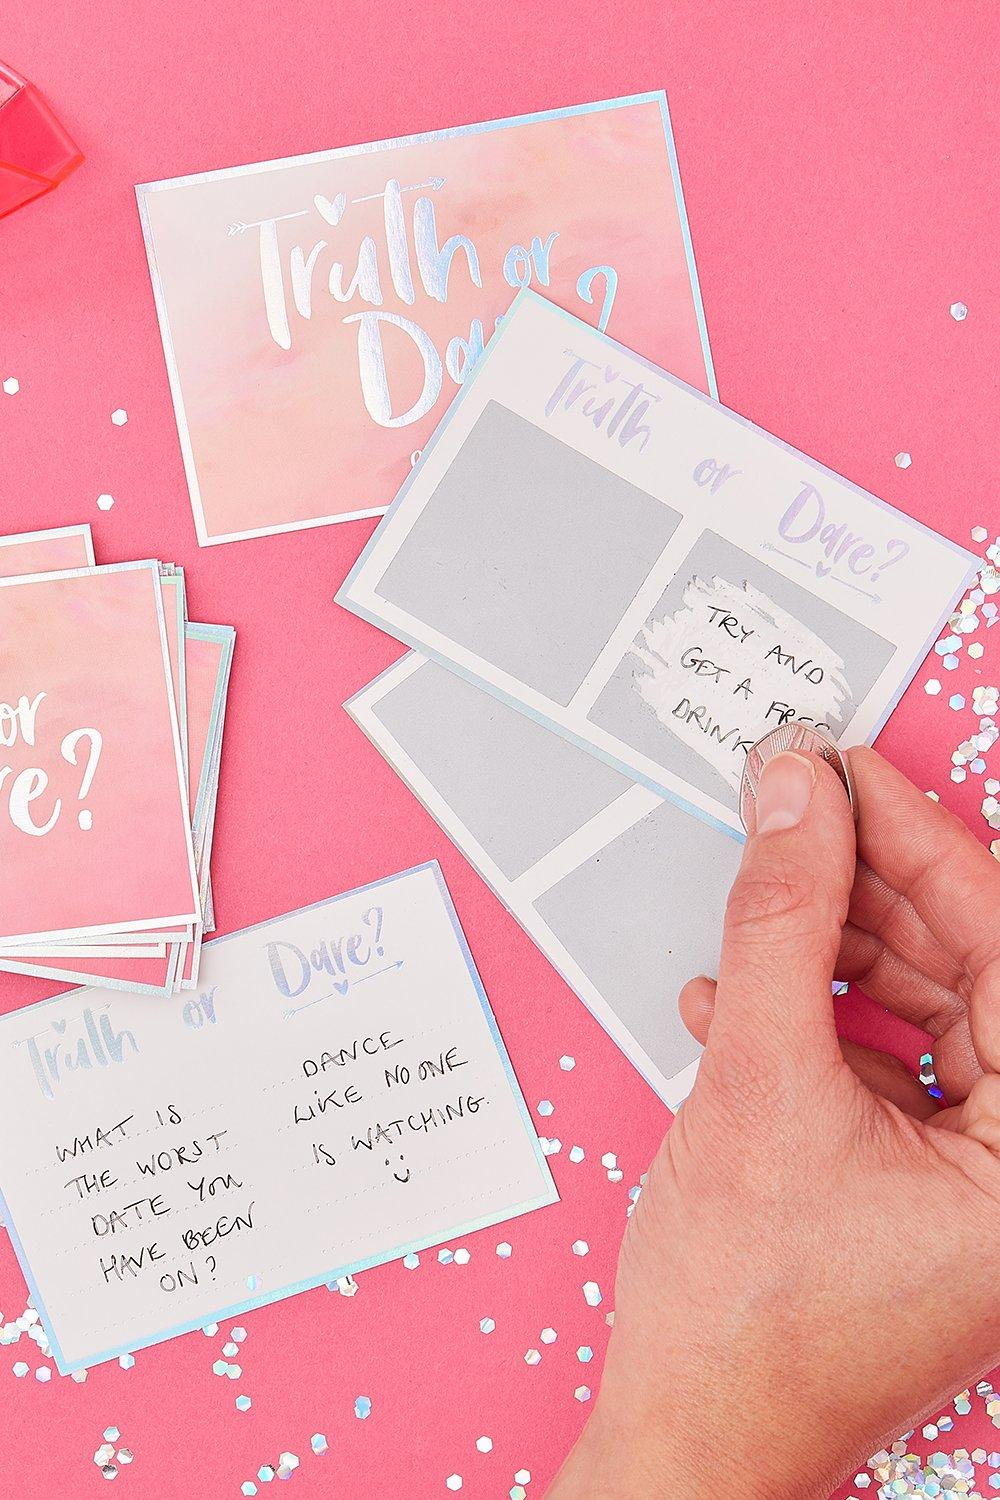 boohoo Womens Ginger Ray Bridal Truth Or Dare Game Cards - Pink - One Size, Pink